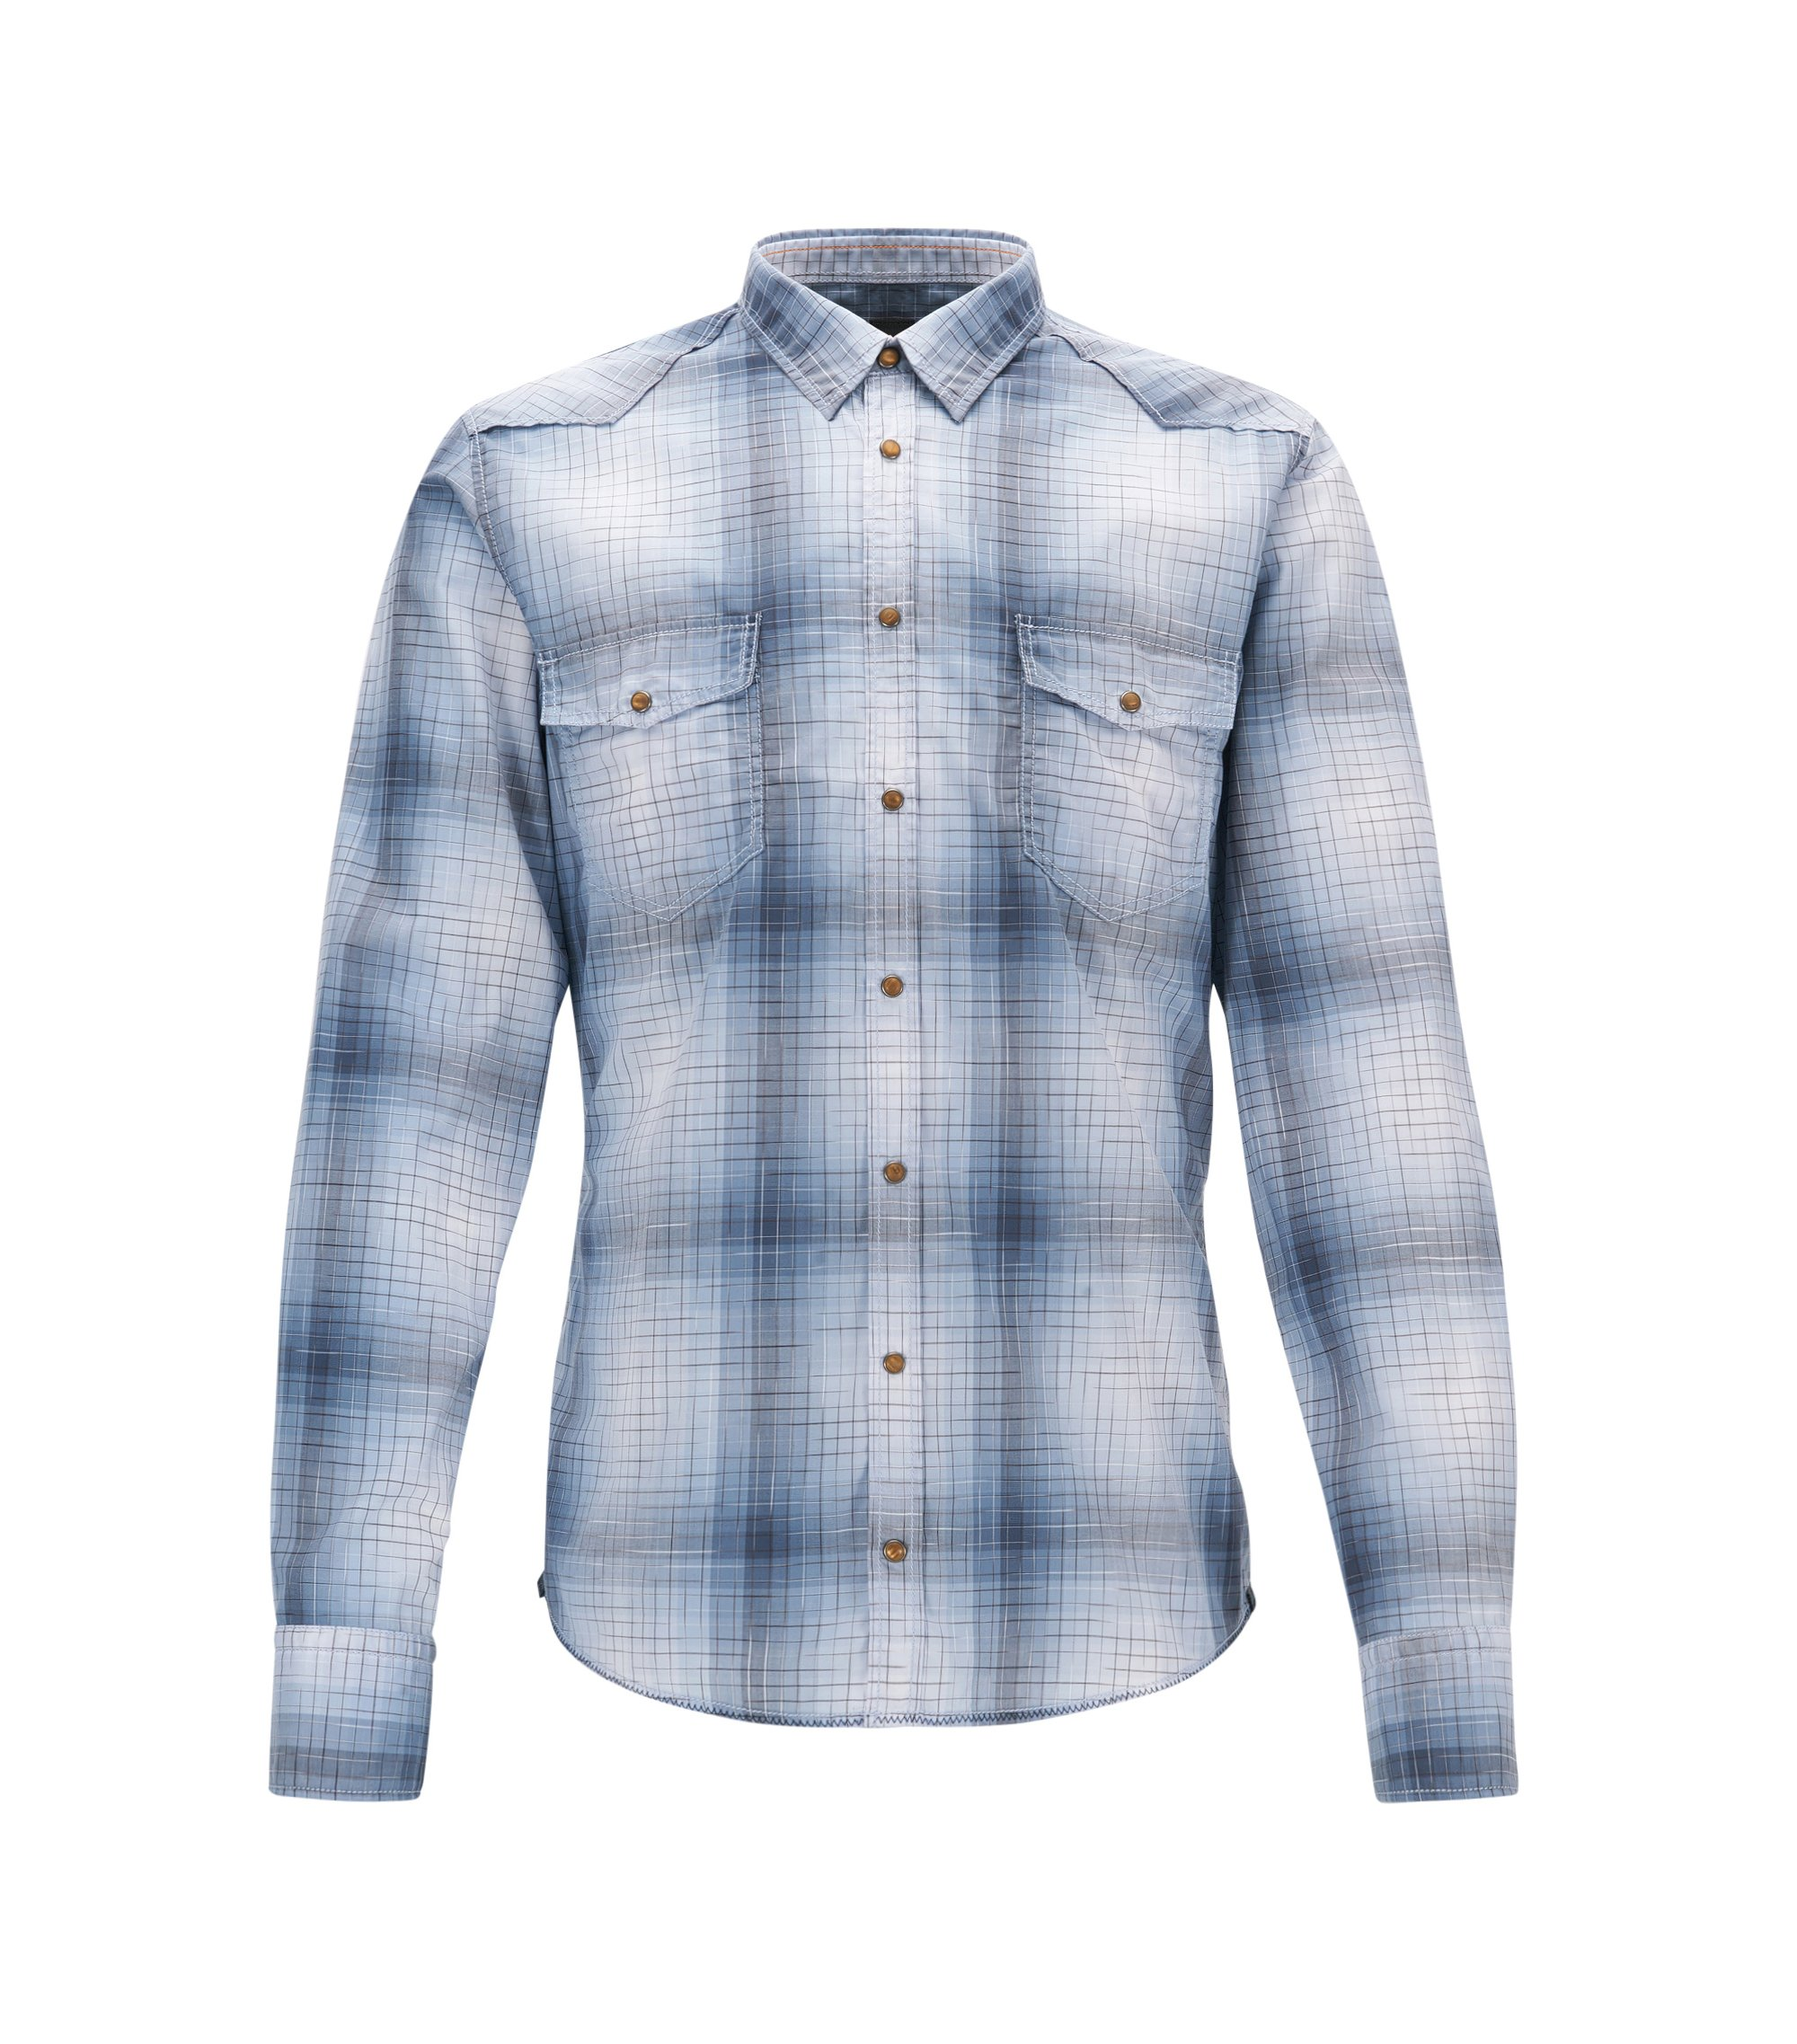 Plaid Cotton Western Shirt, Extra Slim Fit | Erodeo, Open Blue